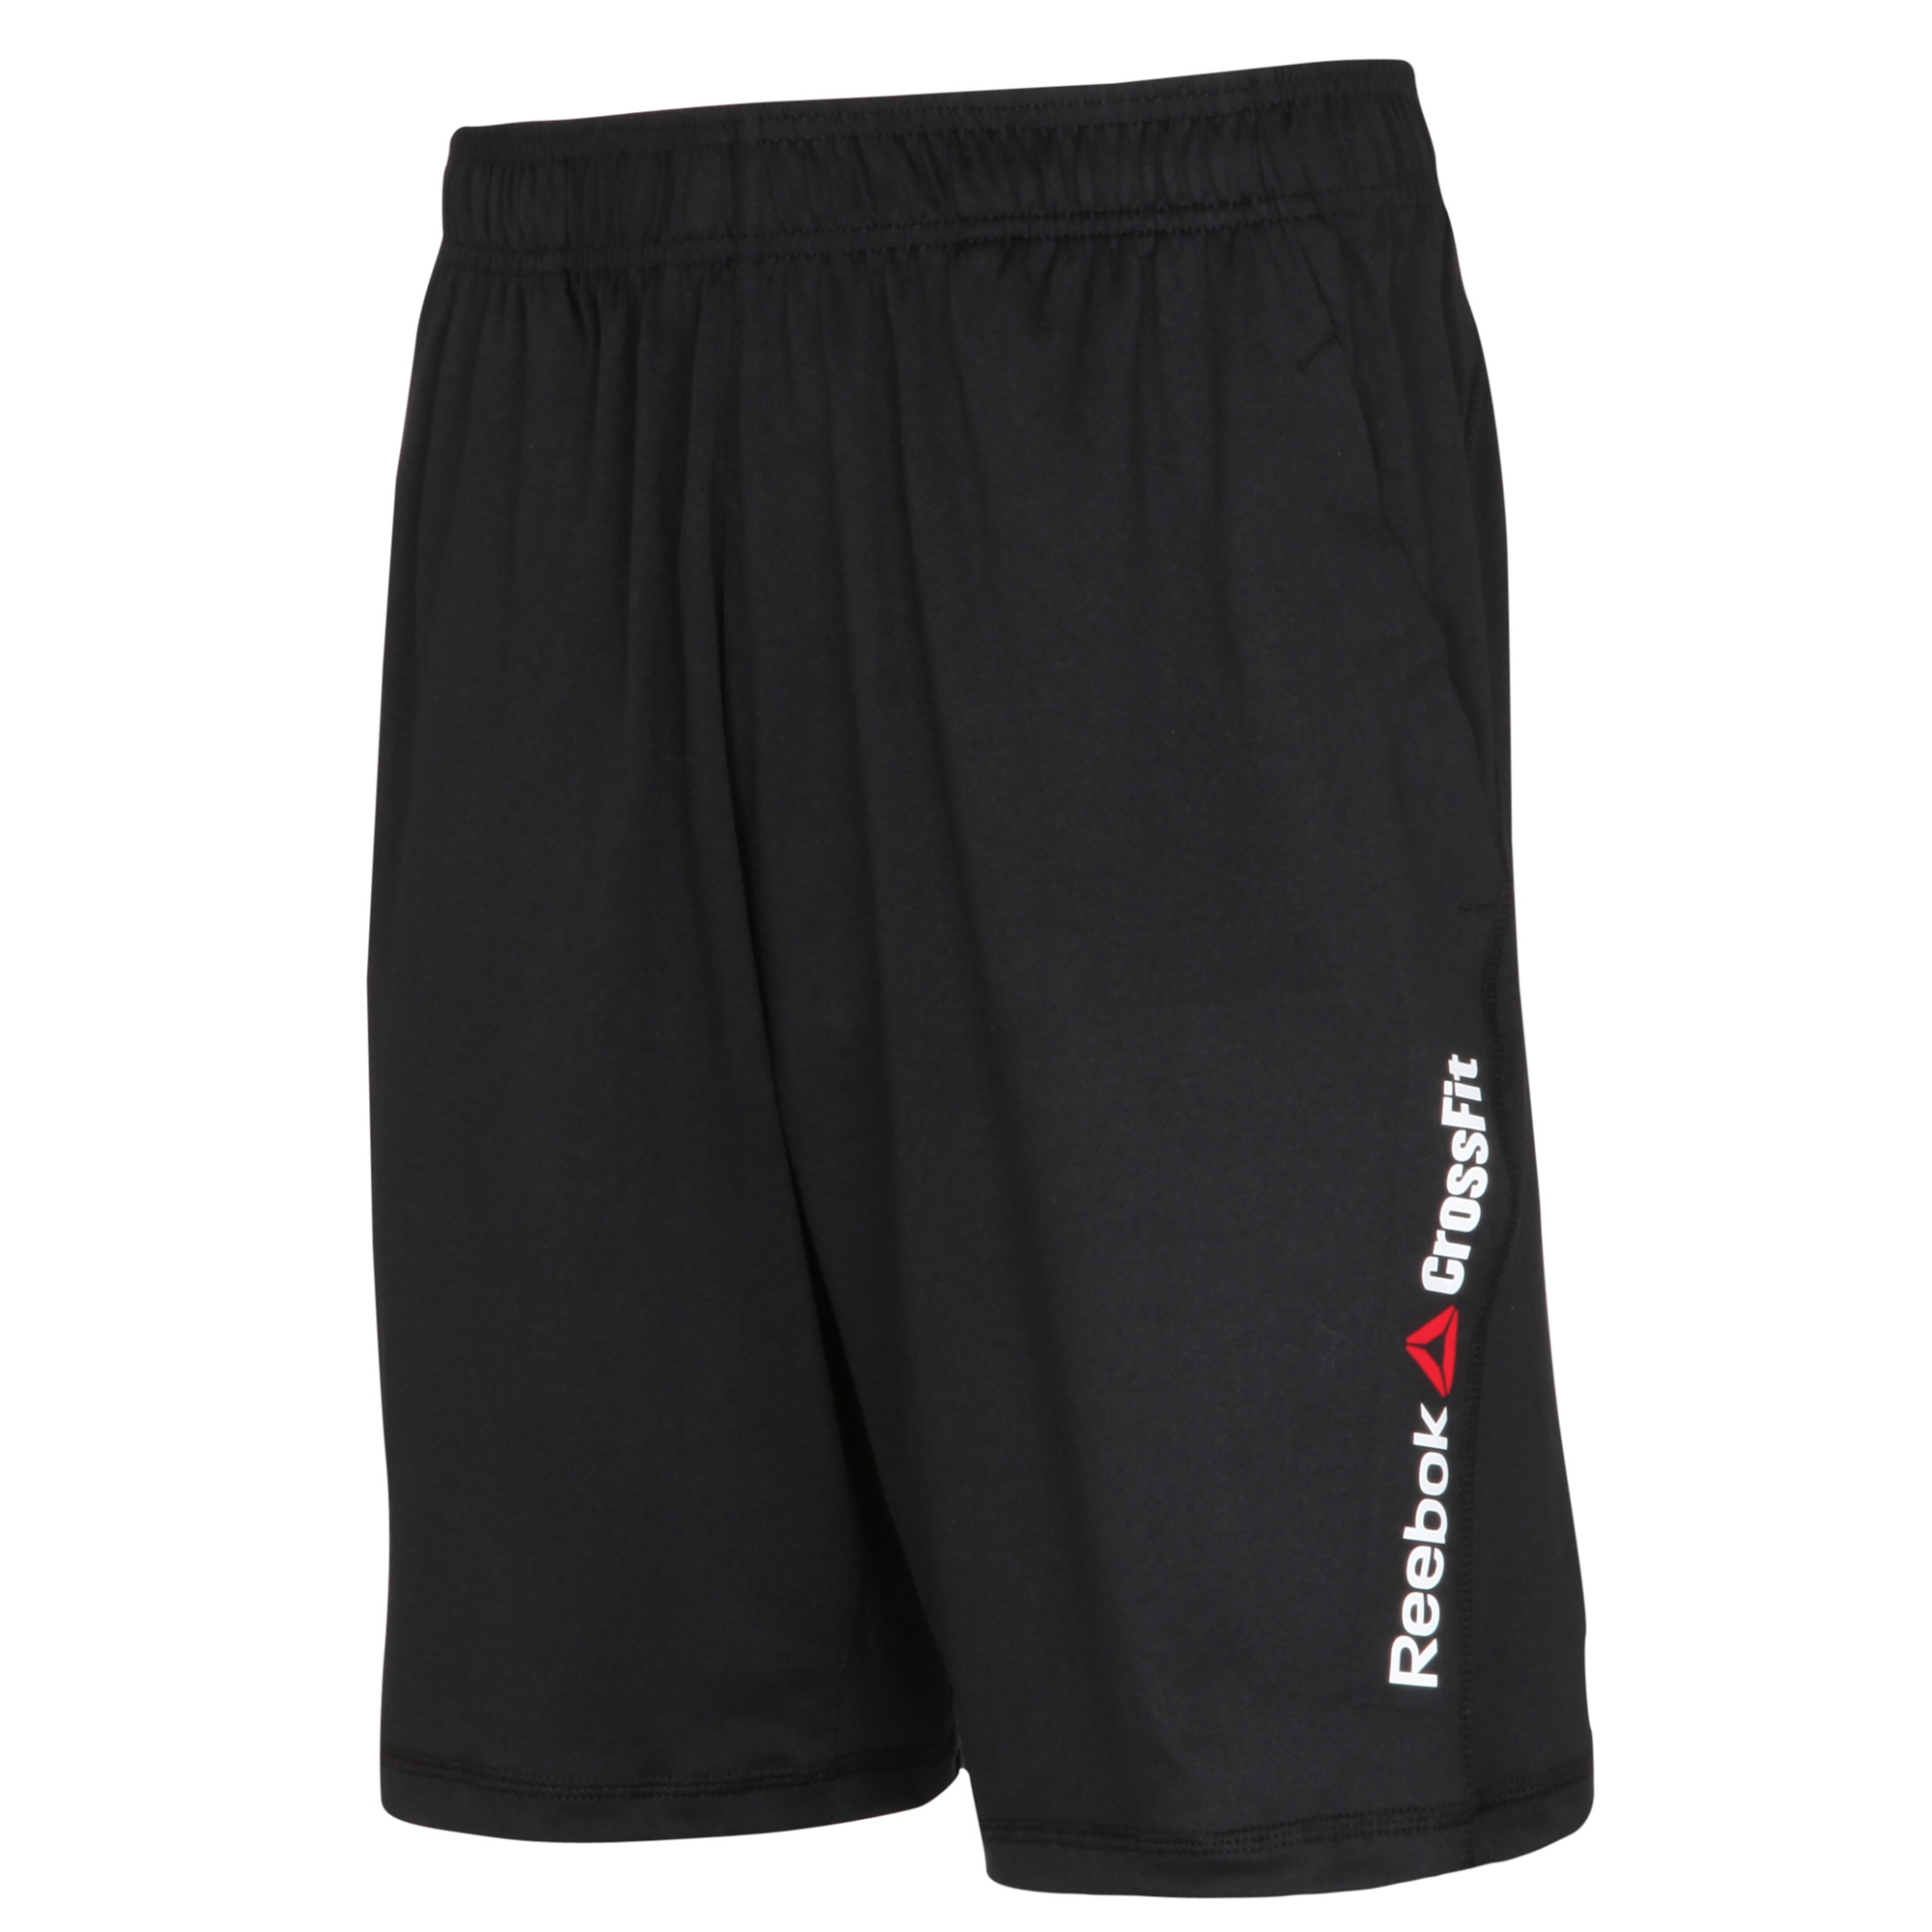 reebok crossfit black shorts